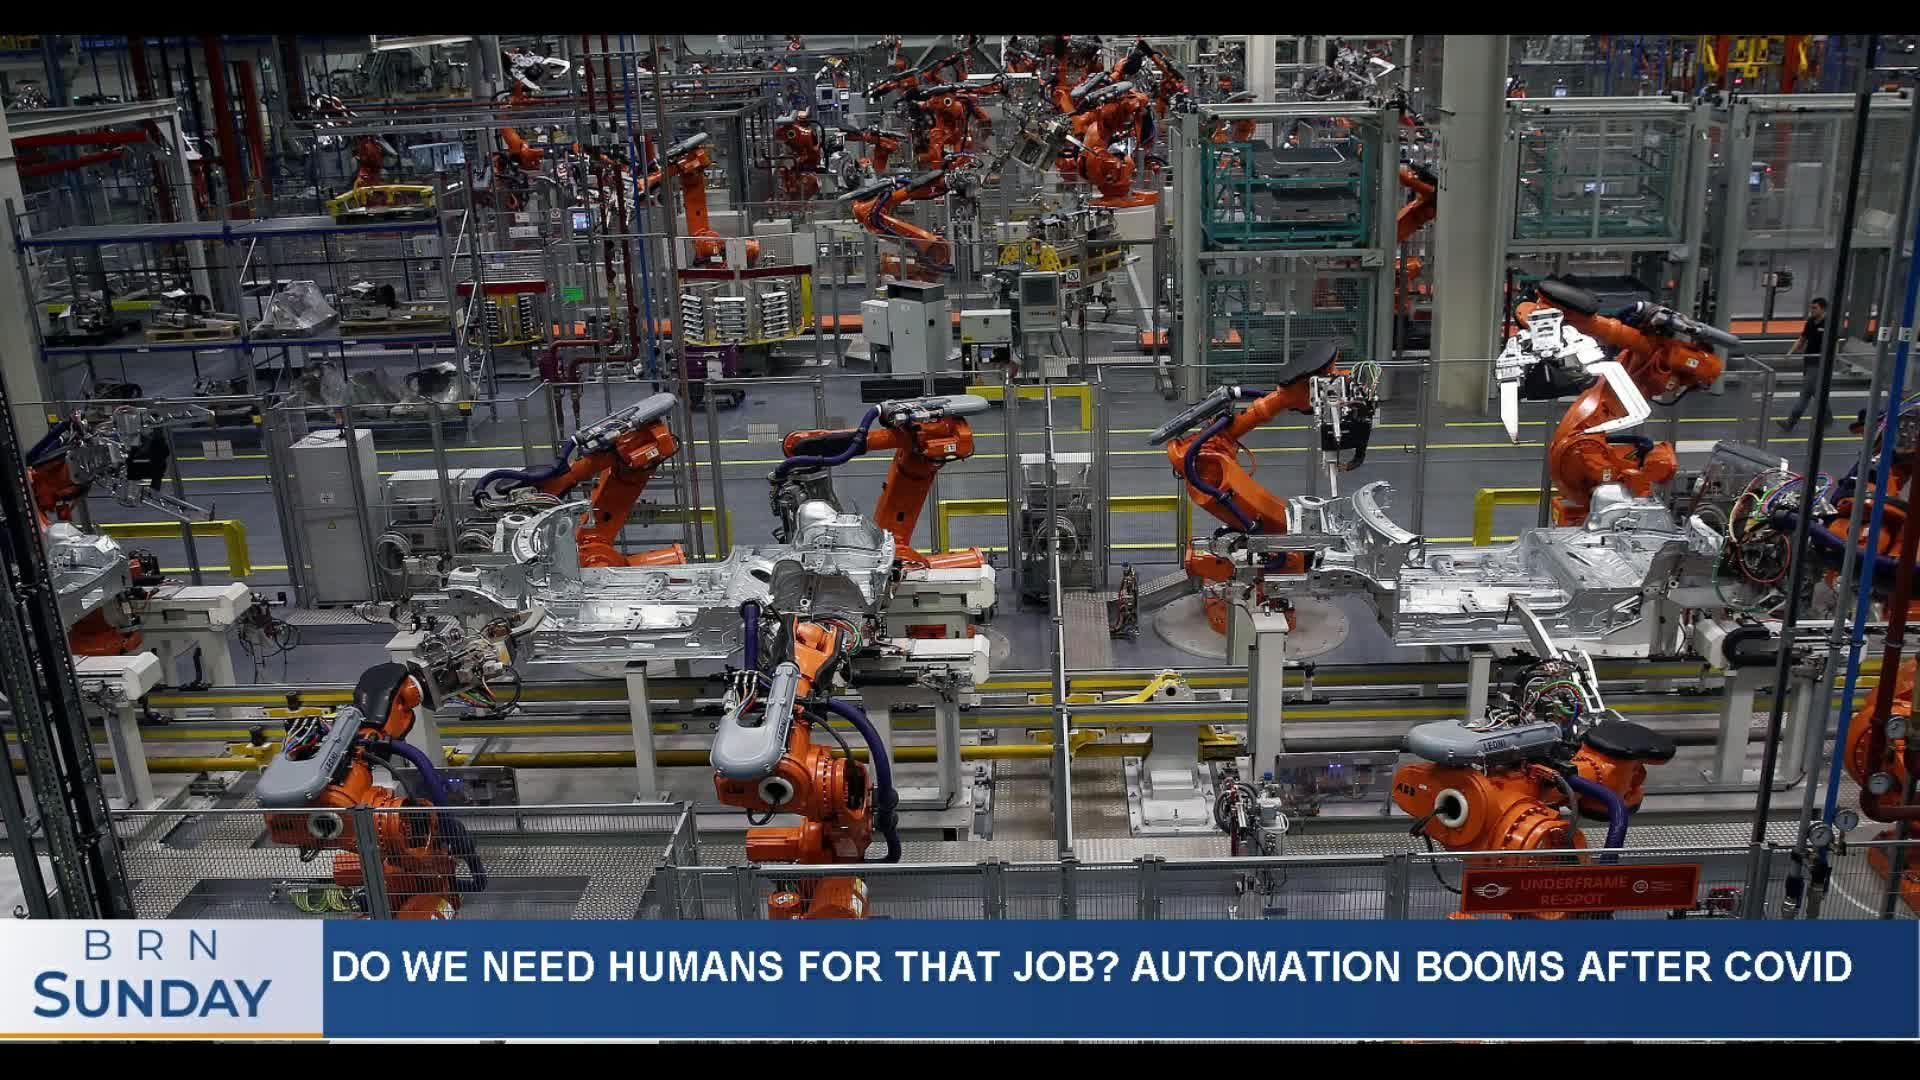 BRN Sunday   Do we need humans for that job? Automation booms after COVID